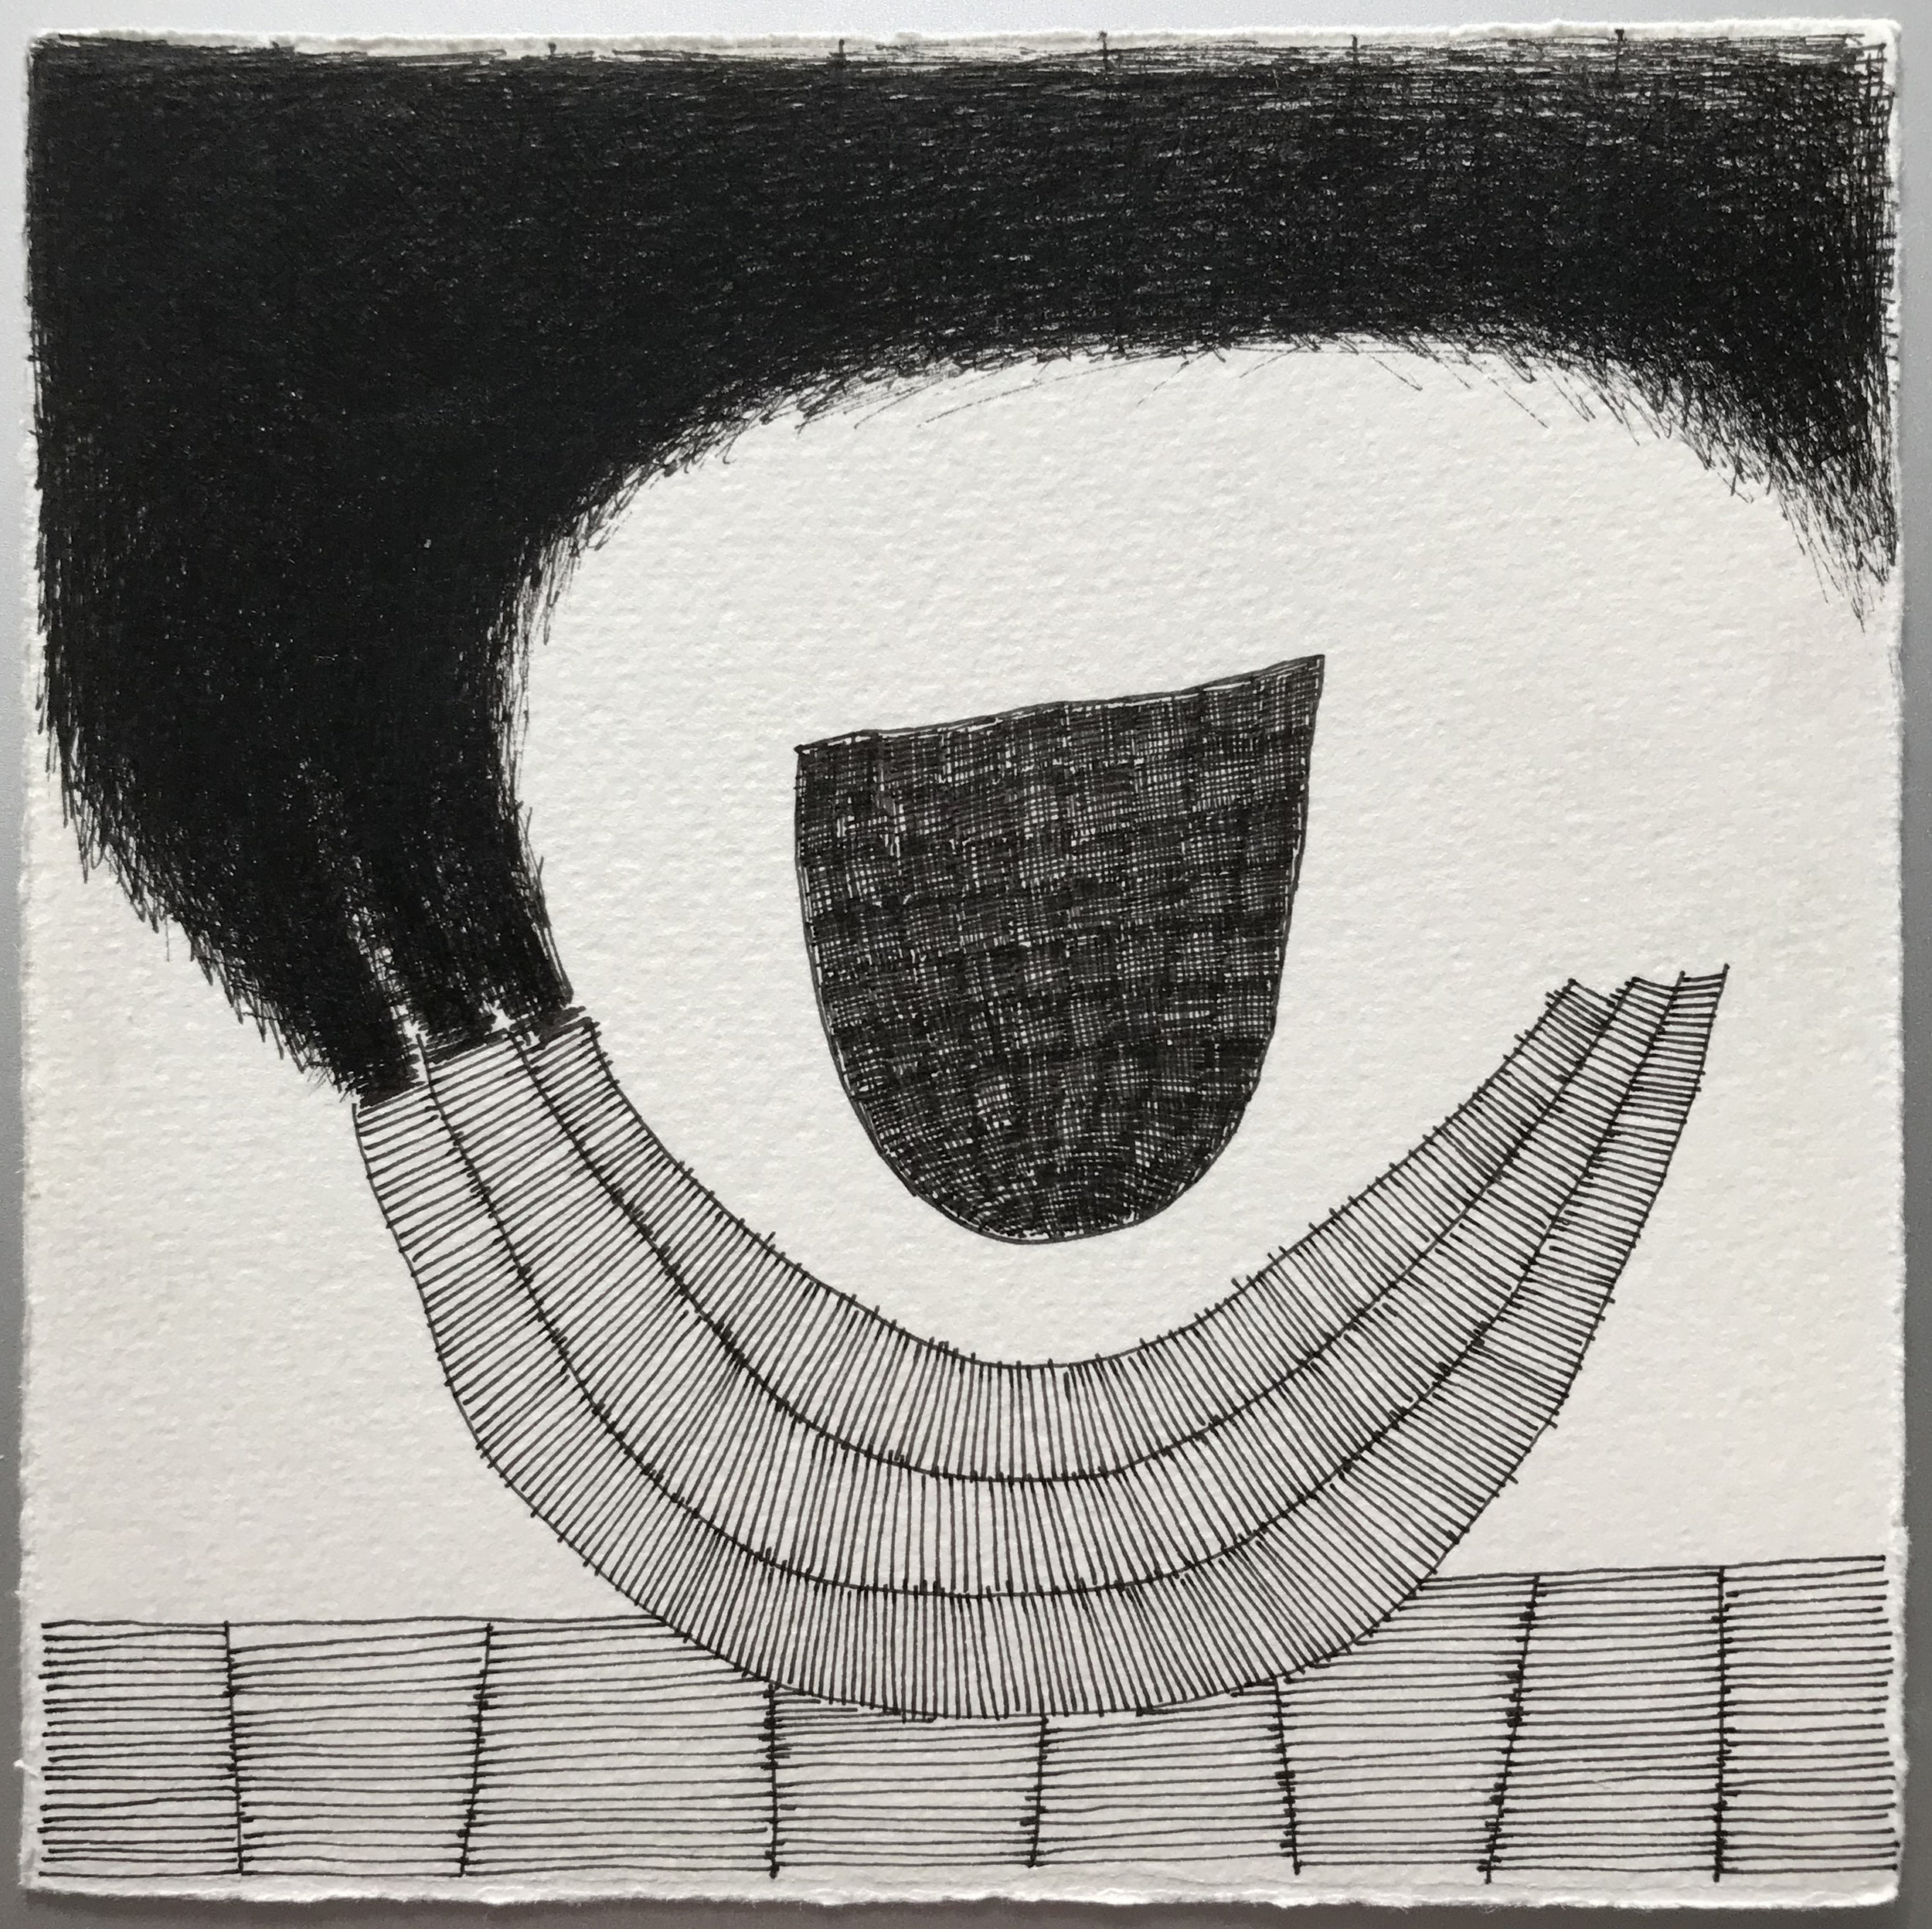 Pen & Ink on Fabriano